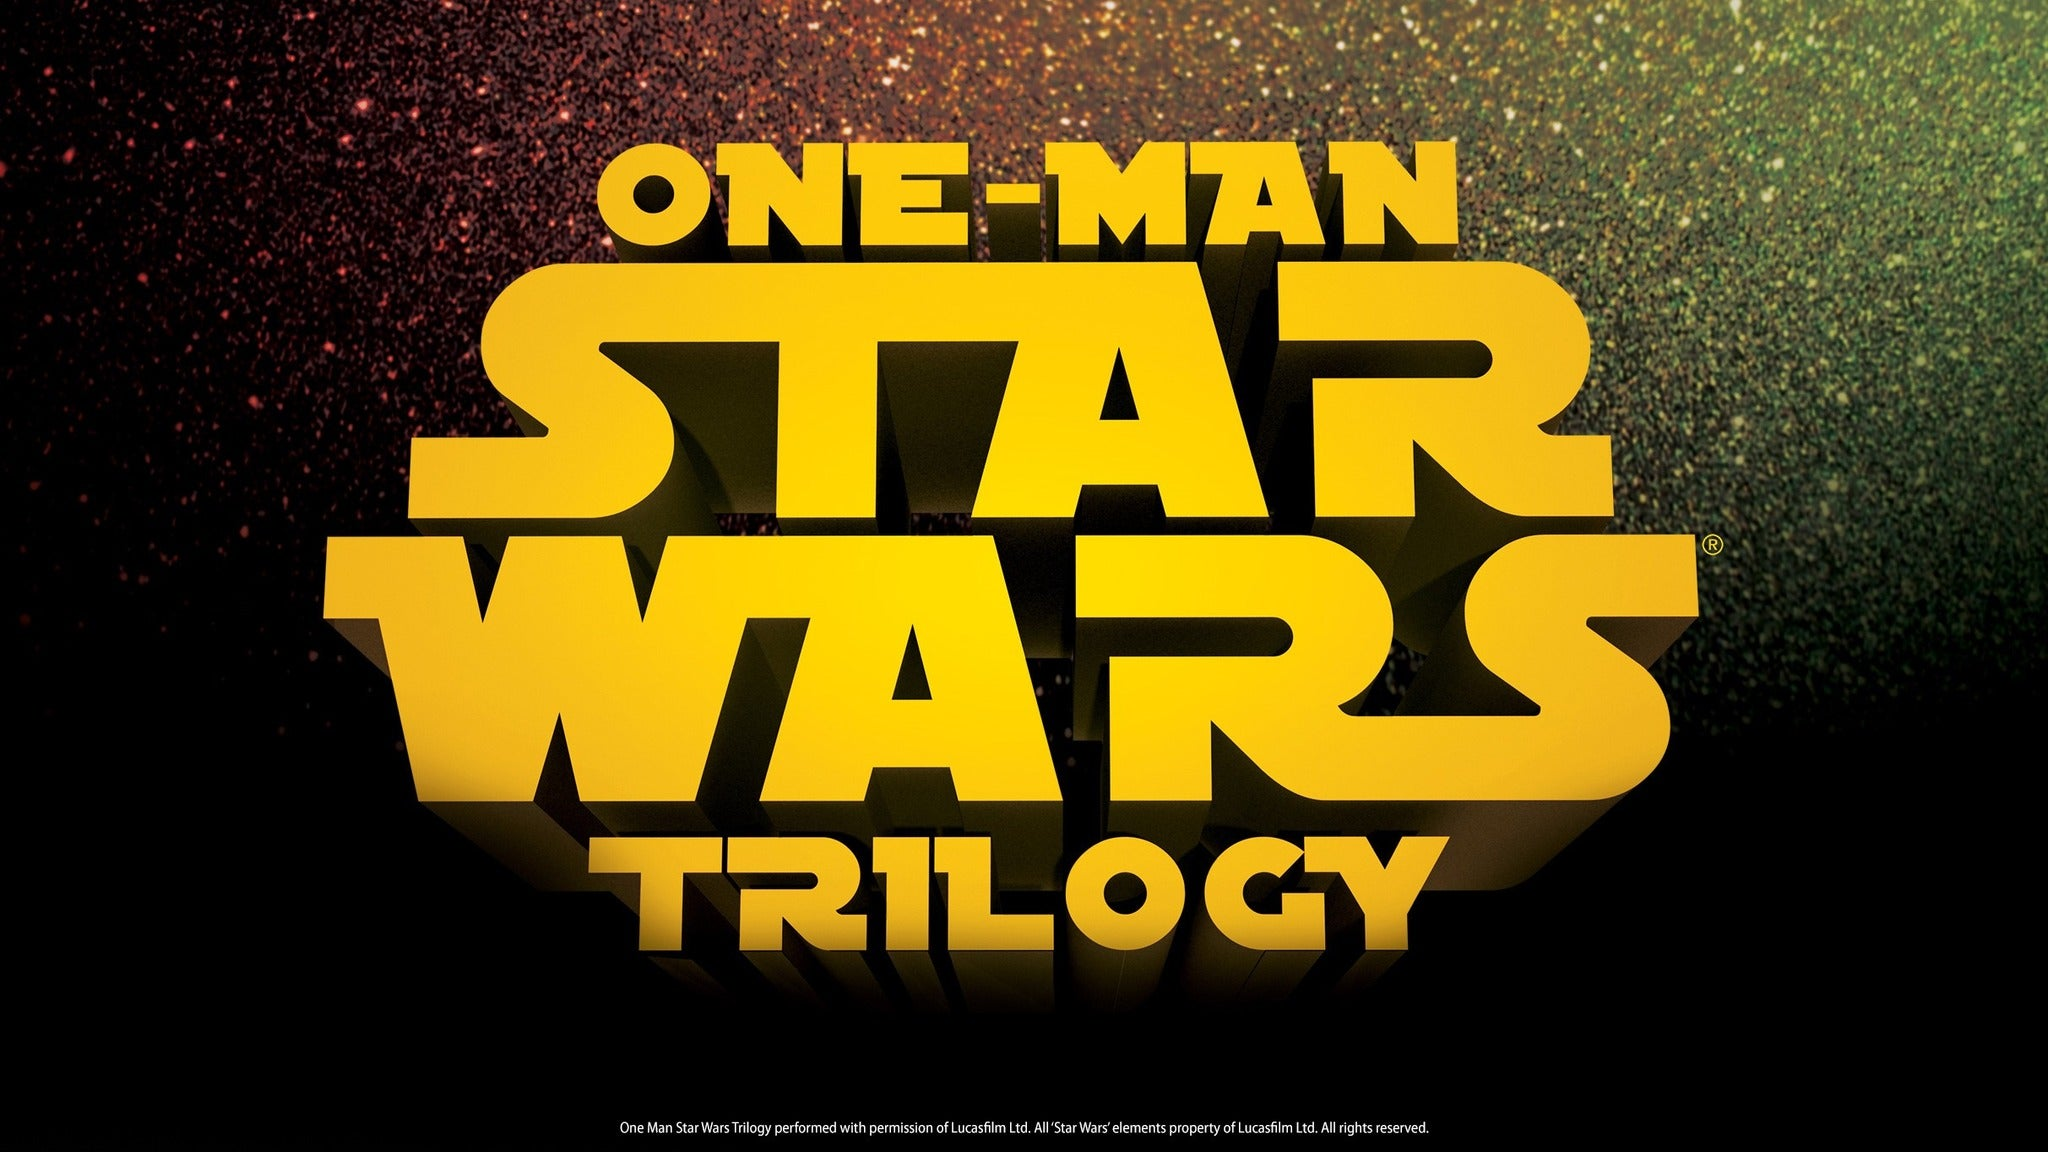 One Man Star Wars at Effingham Performance Center